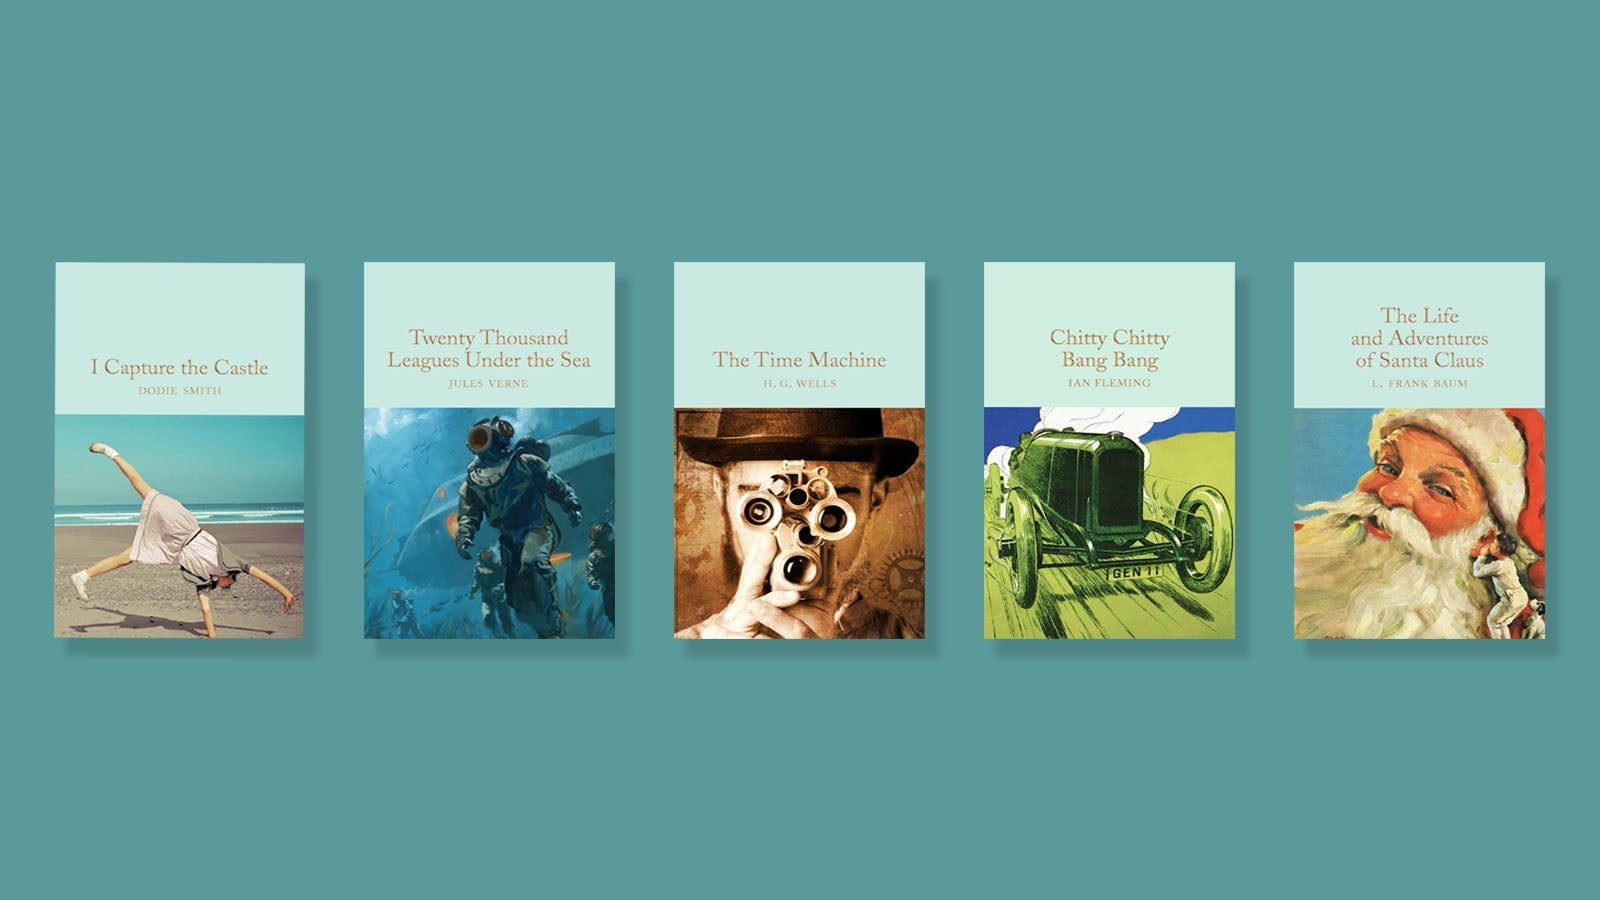 Macmillan Collector's Library Books on Turquoise background